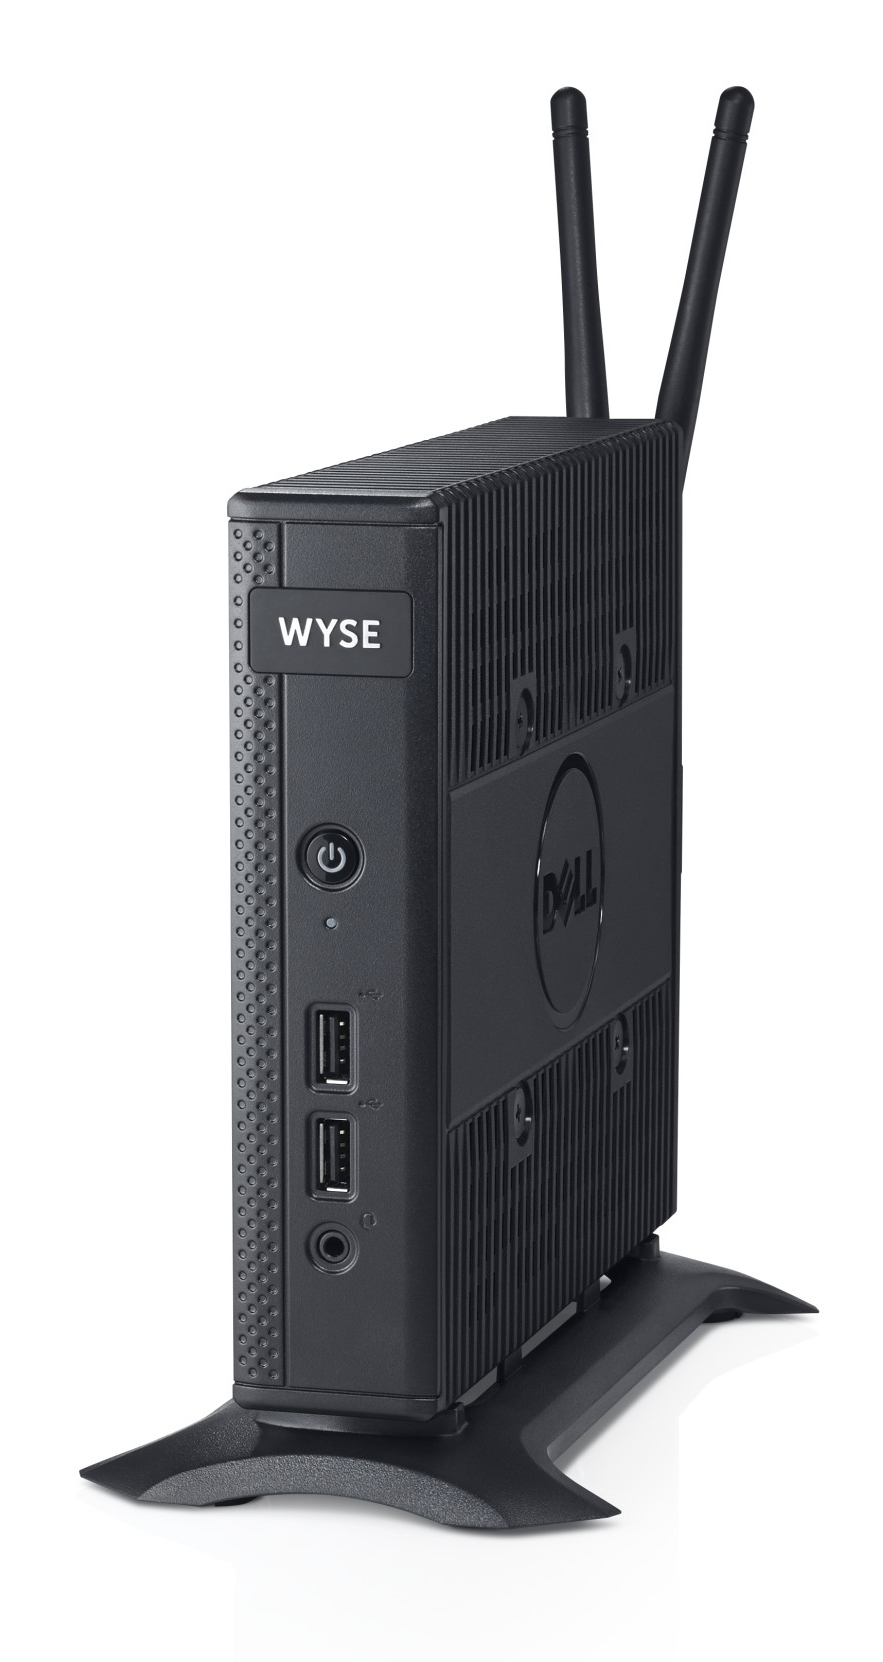 Specs Dell Wyse 5010 1 4 GHz G-T48E Black 930 g Thin Clients